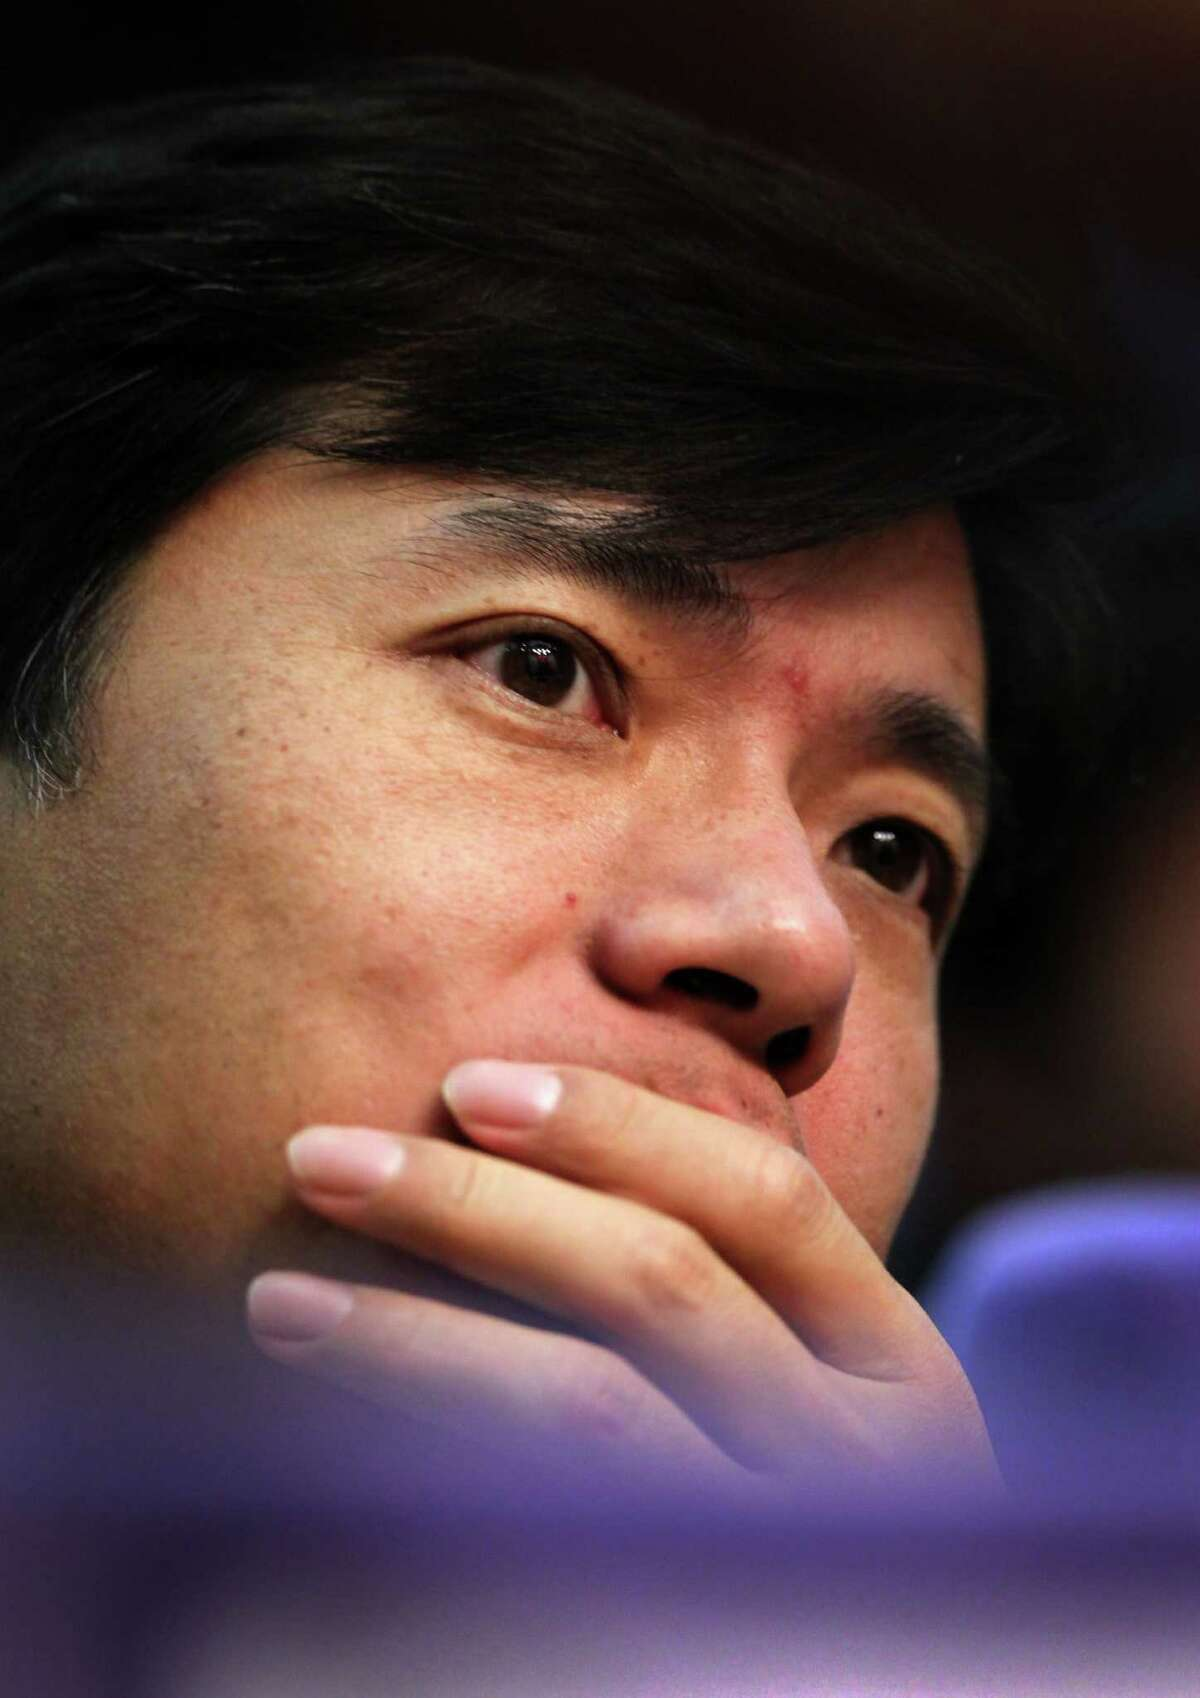 64. Robin Li , 44, Founder and CEO of Baidu (a Chinese web services company).